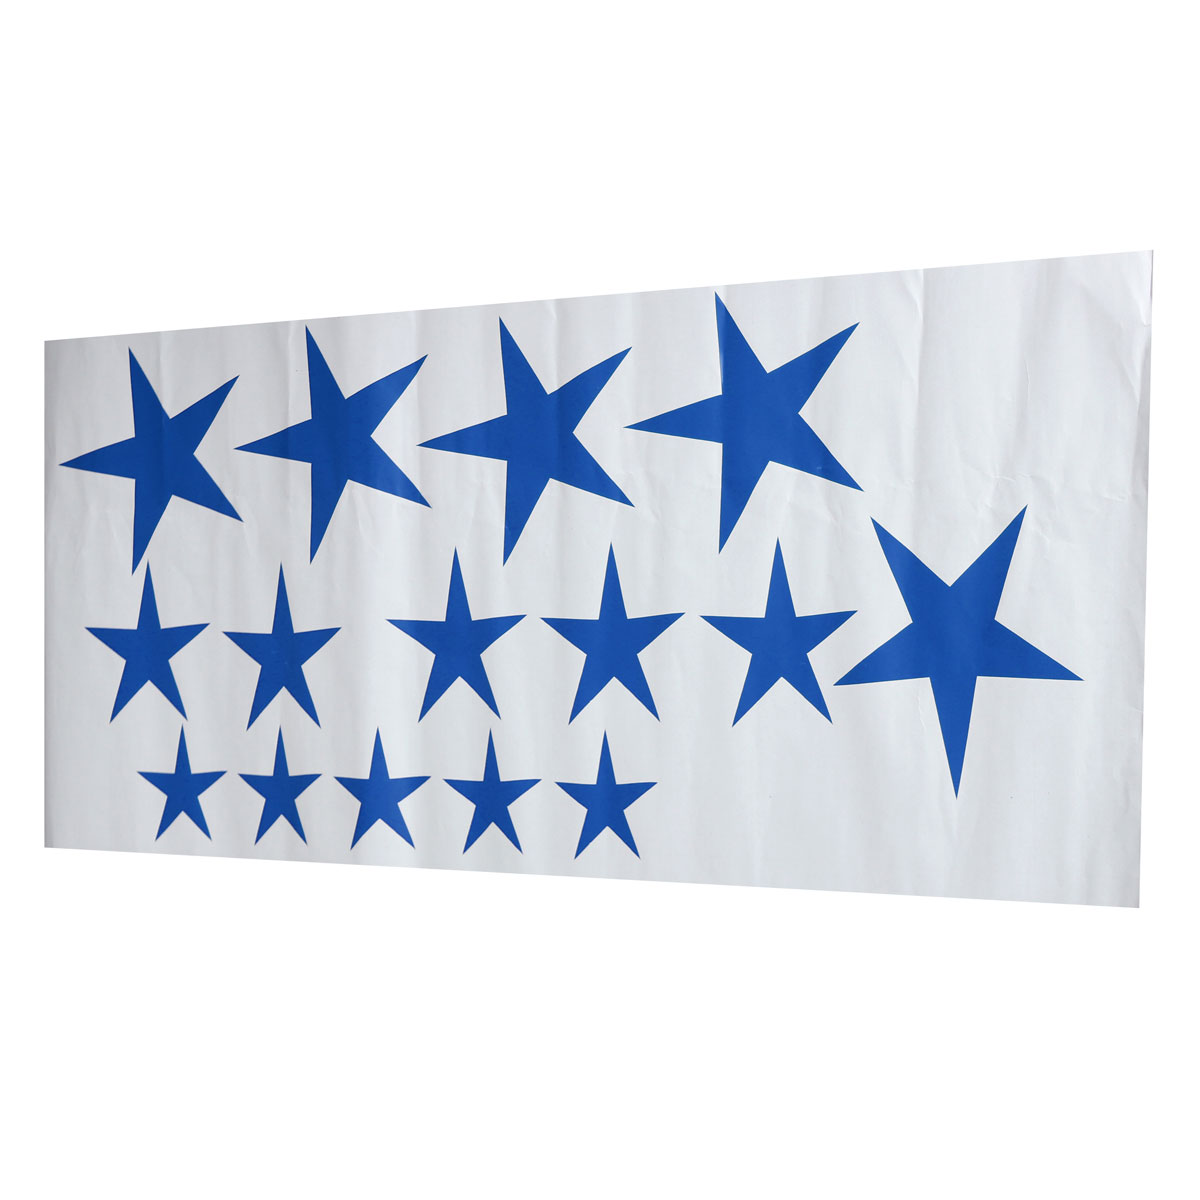 Blue Star Wall Decor : Removable pcs stars wall stickers art vinyl decals for